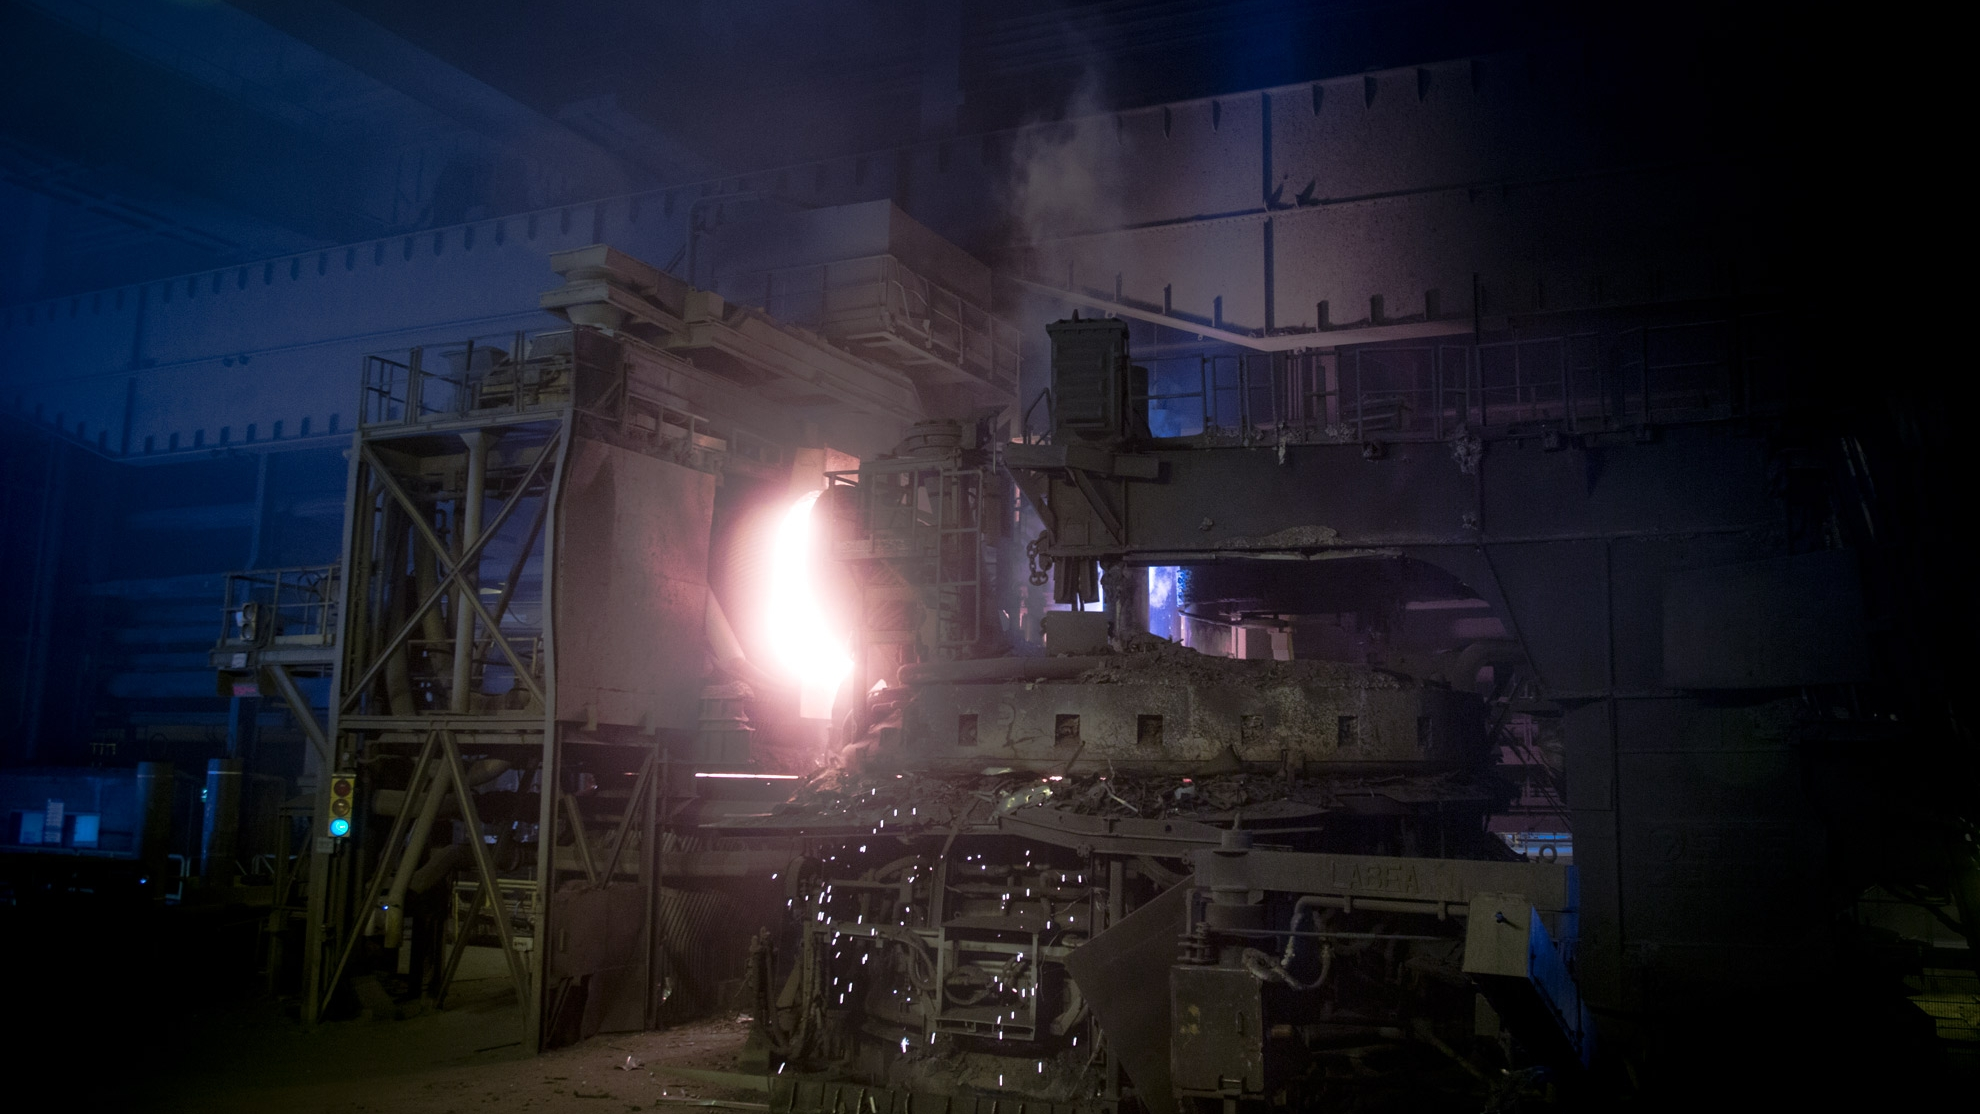 the steel industry revolution has begun -